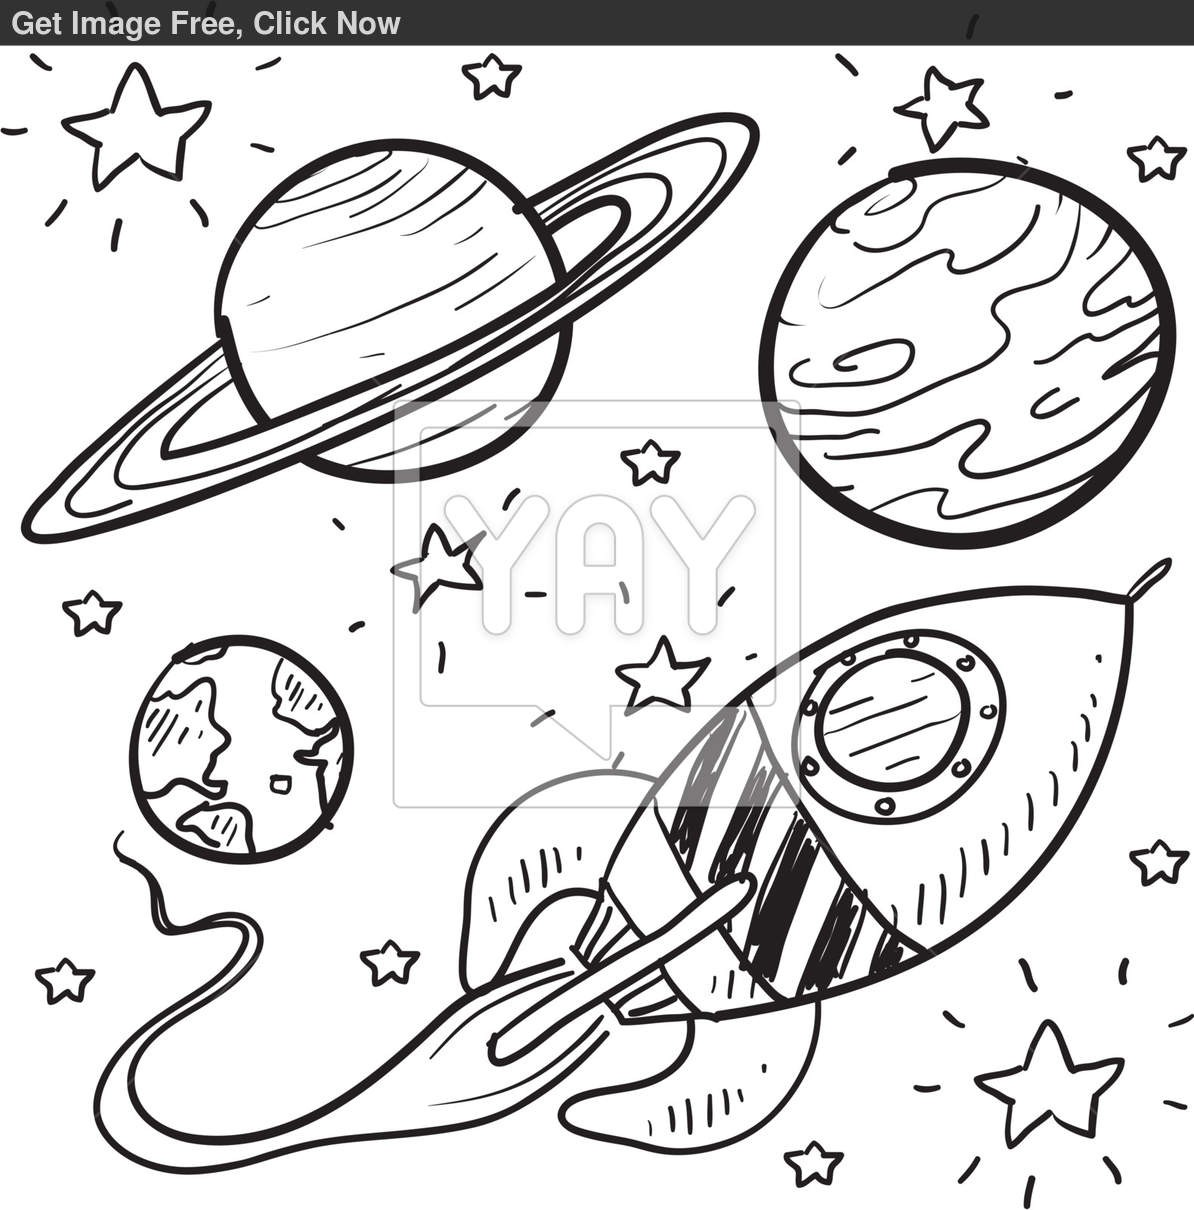 1194x1210 Rocket Coloring Pages